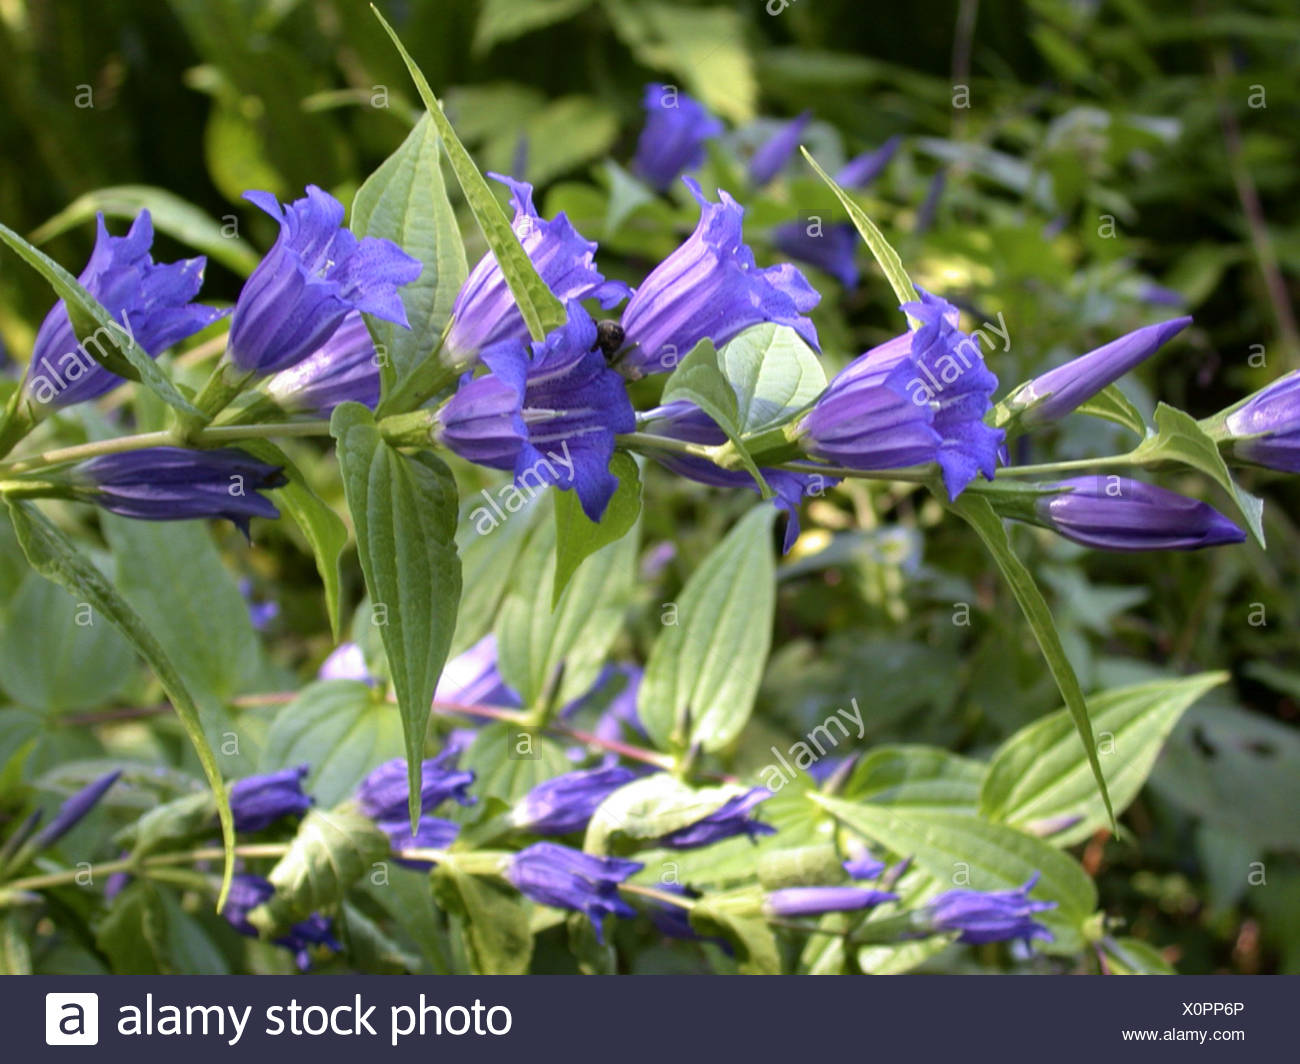 willow gentian (Gentiana asclepiadea), blooming Stock Photo